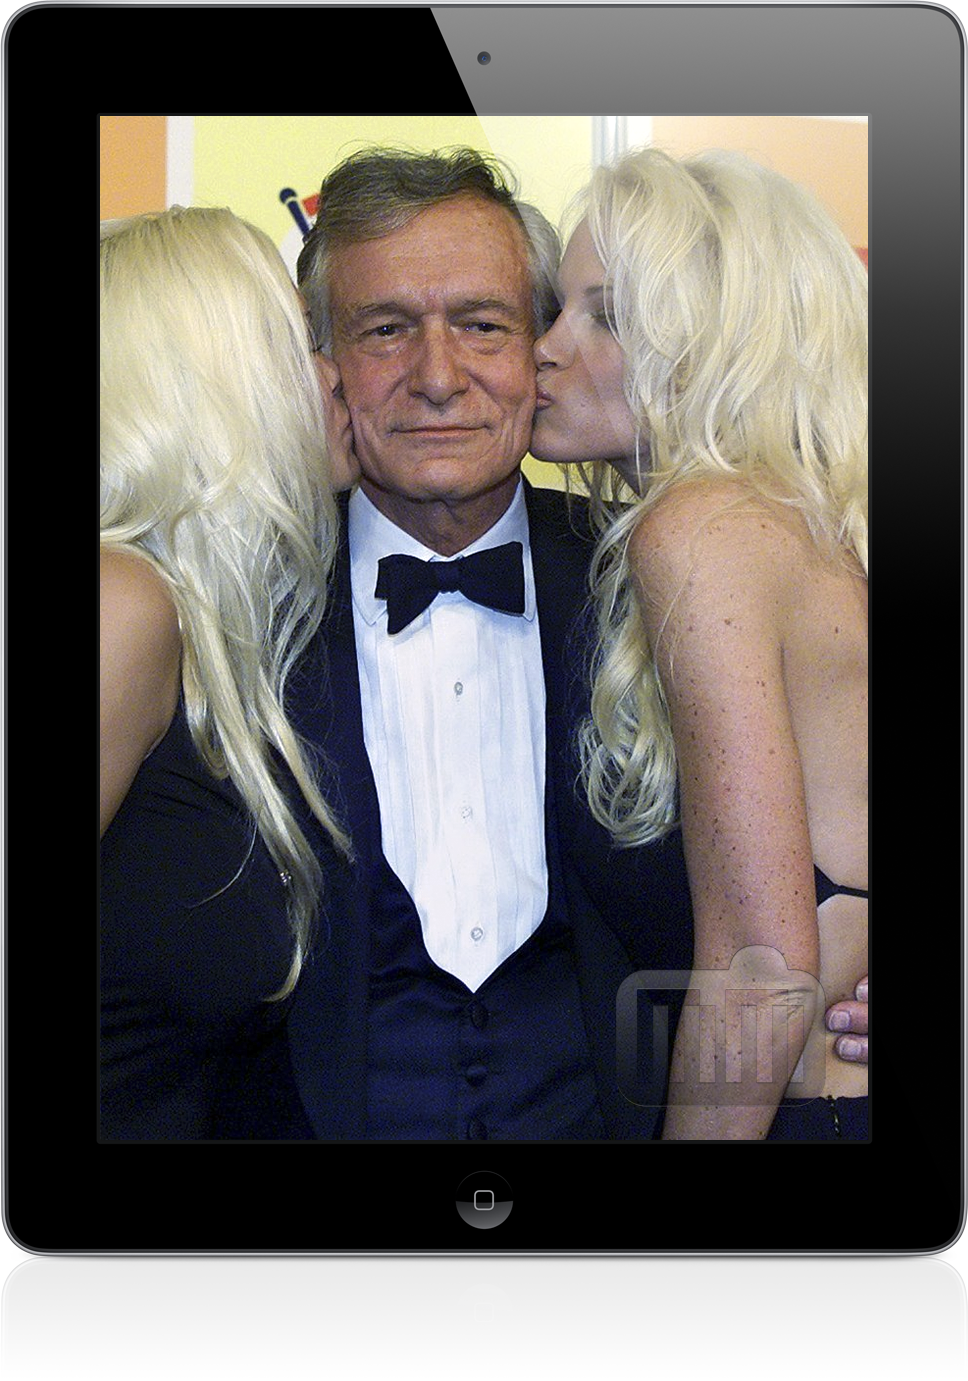 Playmates e Hugh Hefner num iPad